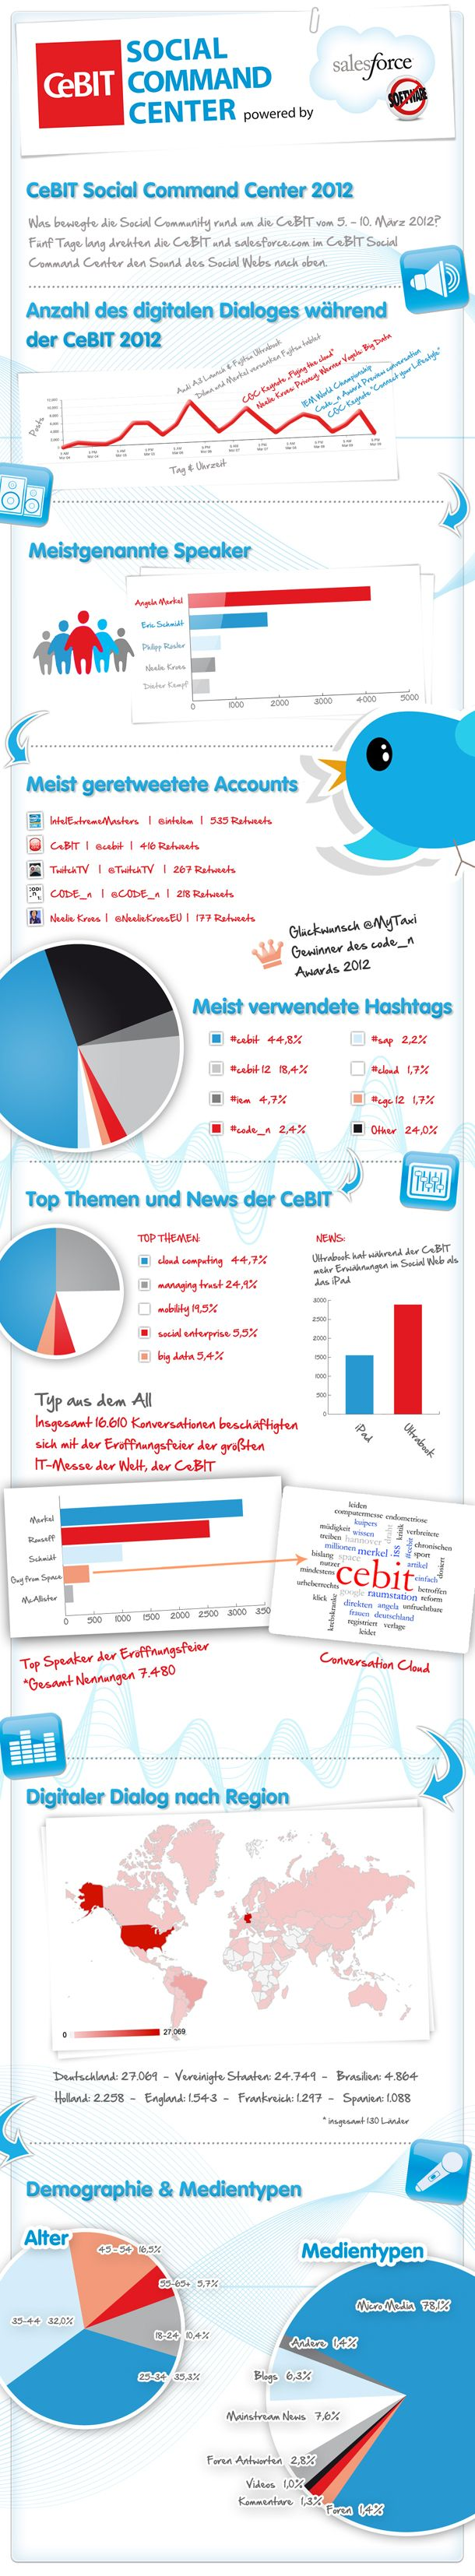 Infographic produced in Germany for CeBIT 2012